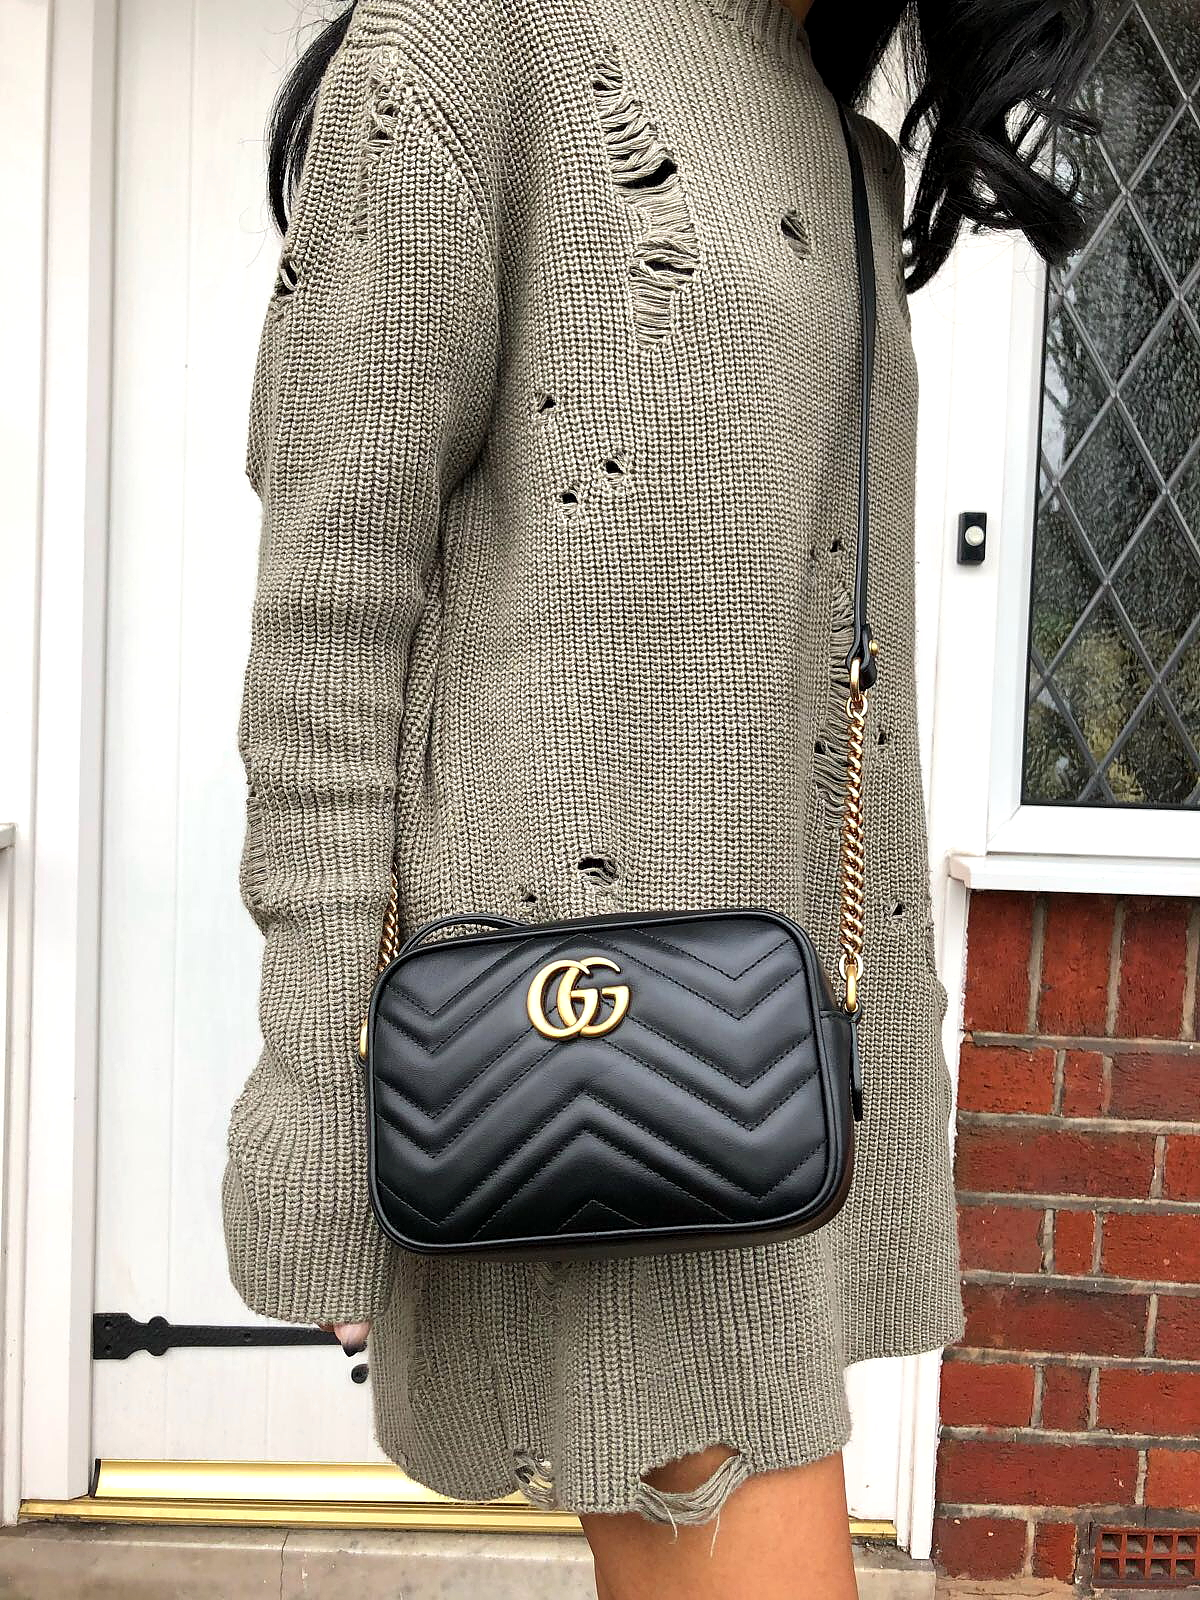 c8c33f5e2901c7 Bag Review - Gucci Marmont Crossbody Bag - The Style Count